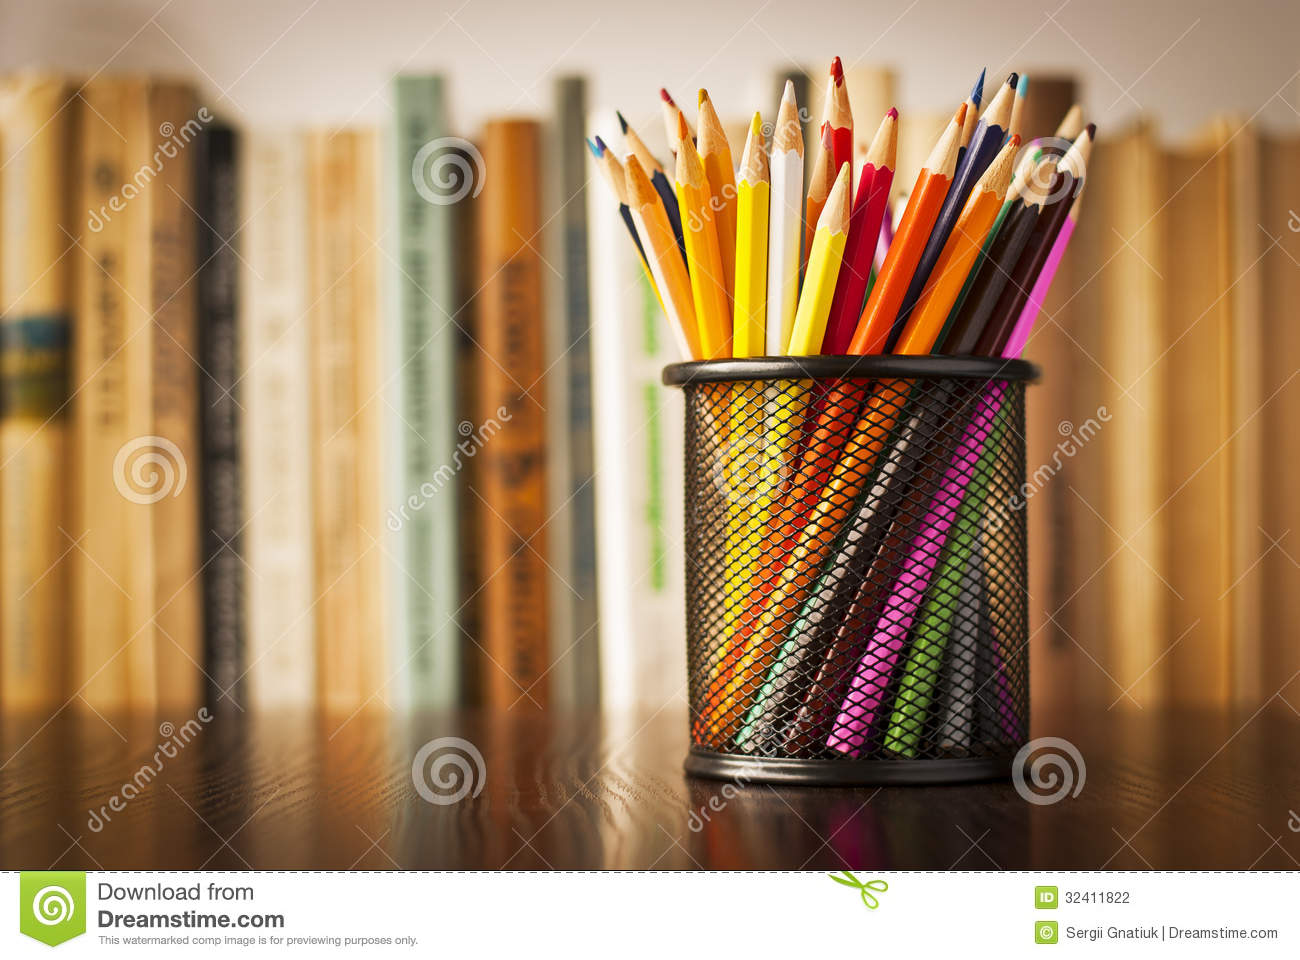 Wire Desk Tidy Full Of Coloured Pencils Stock Photo